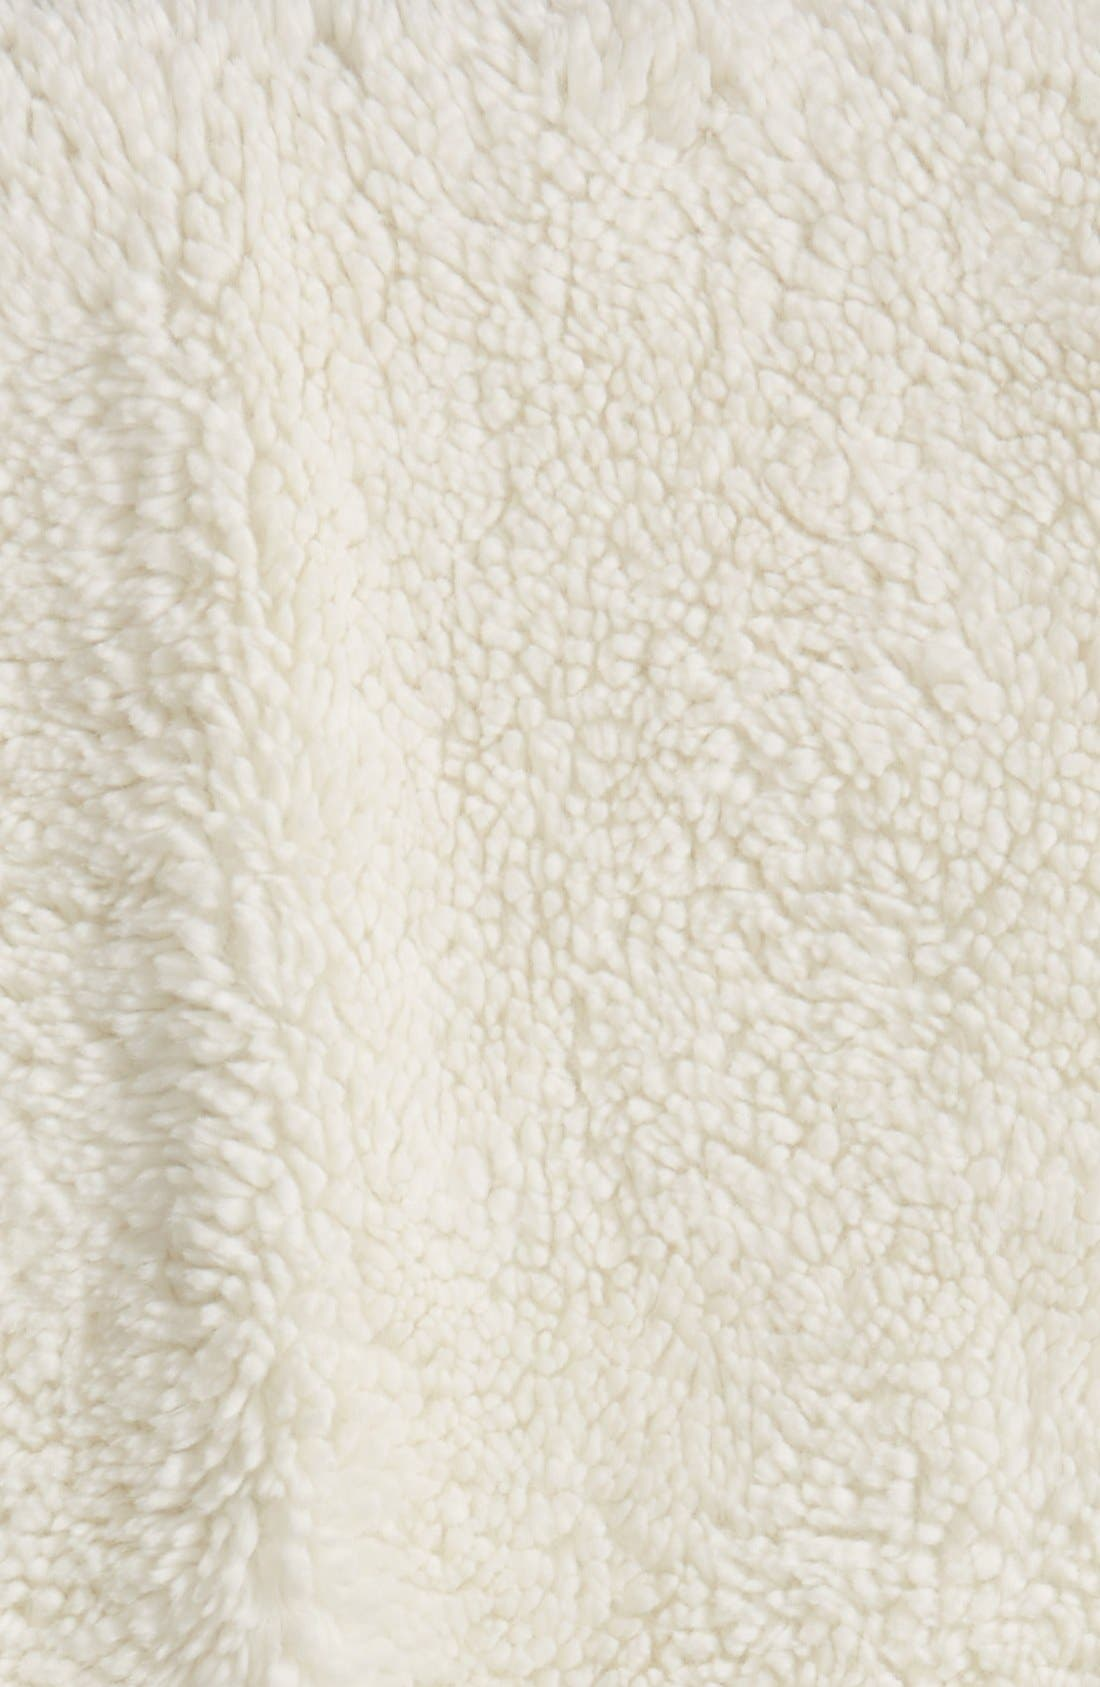 Nordstrom Jersey/Faux Fur Throw,                             Alternate thumbnail 12, color,